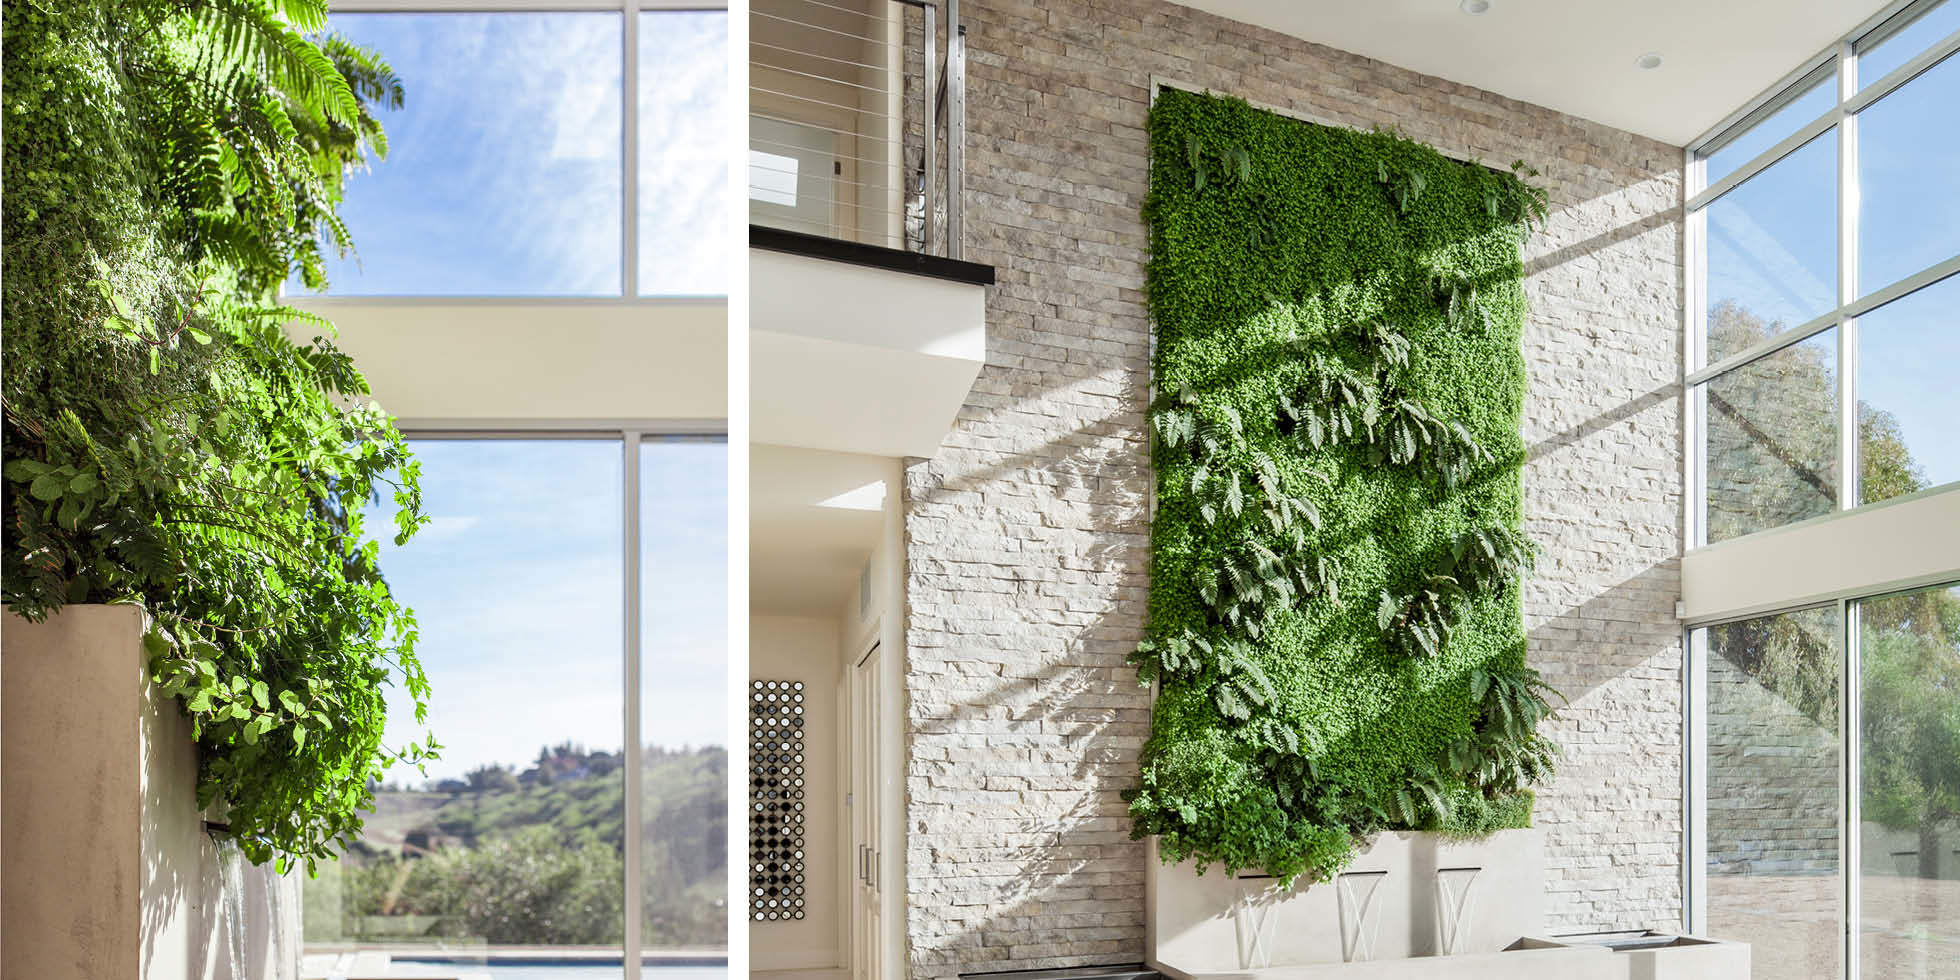 Liddicoat Residence Living Wall by Habitat Horticulture - View 4